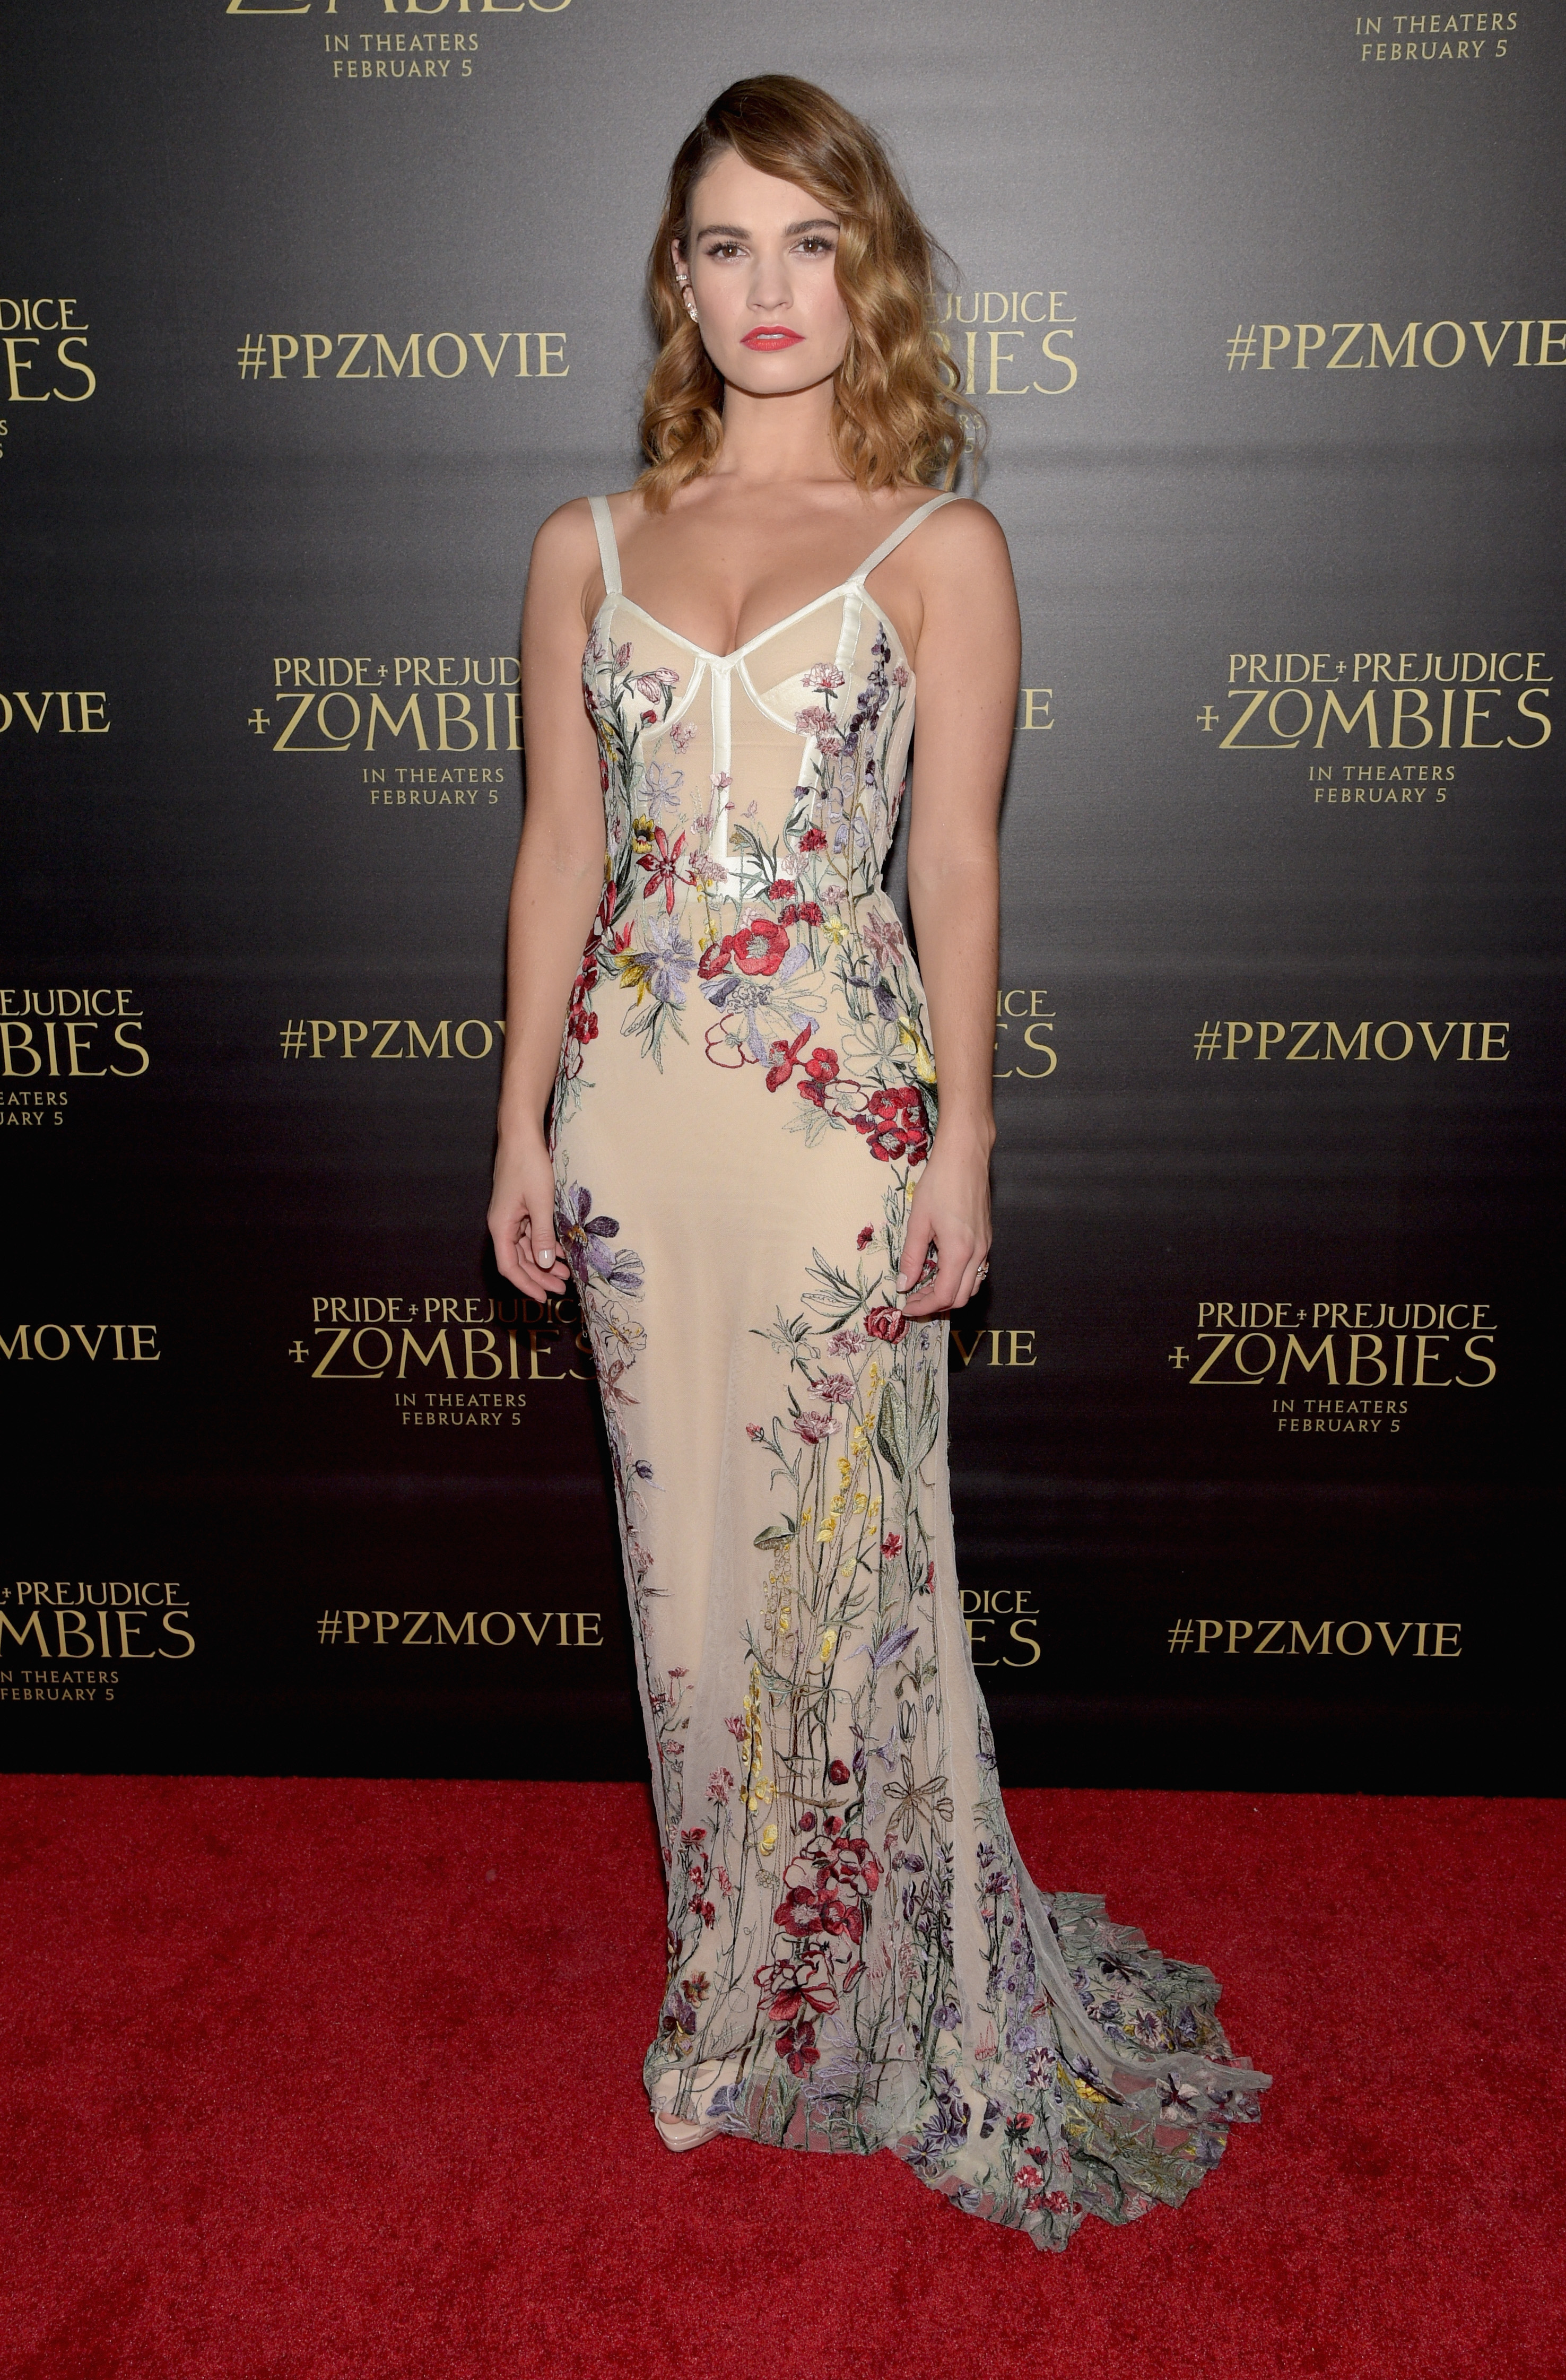 Lily James in a nude floral Alexander McQueen dress at the Prejudices and Zombies premiere